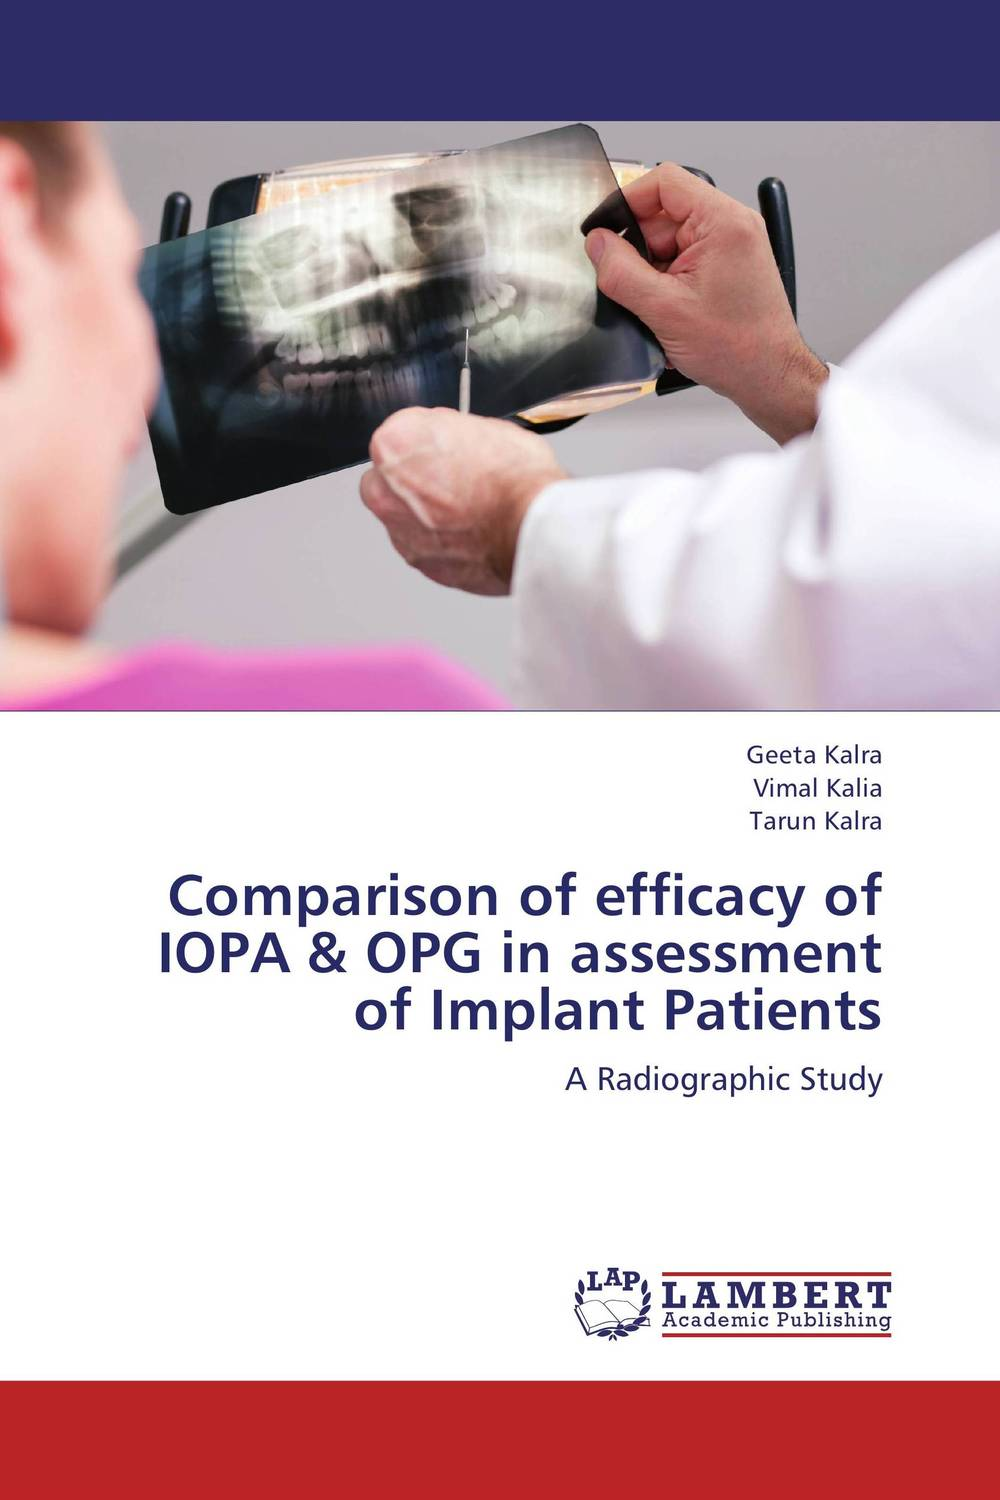 Comparison of efficacy of IOPA & OPG in assessment of Implant Patients shaveta kaushal and atamjit singh pal dental implants and its design